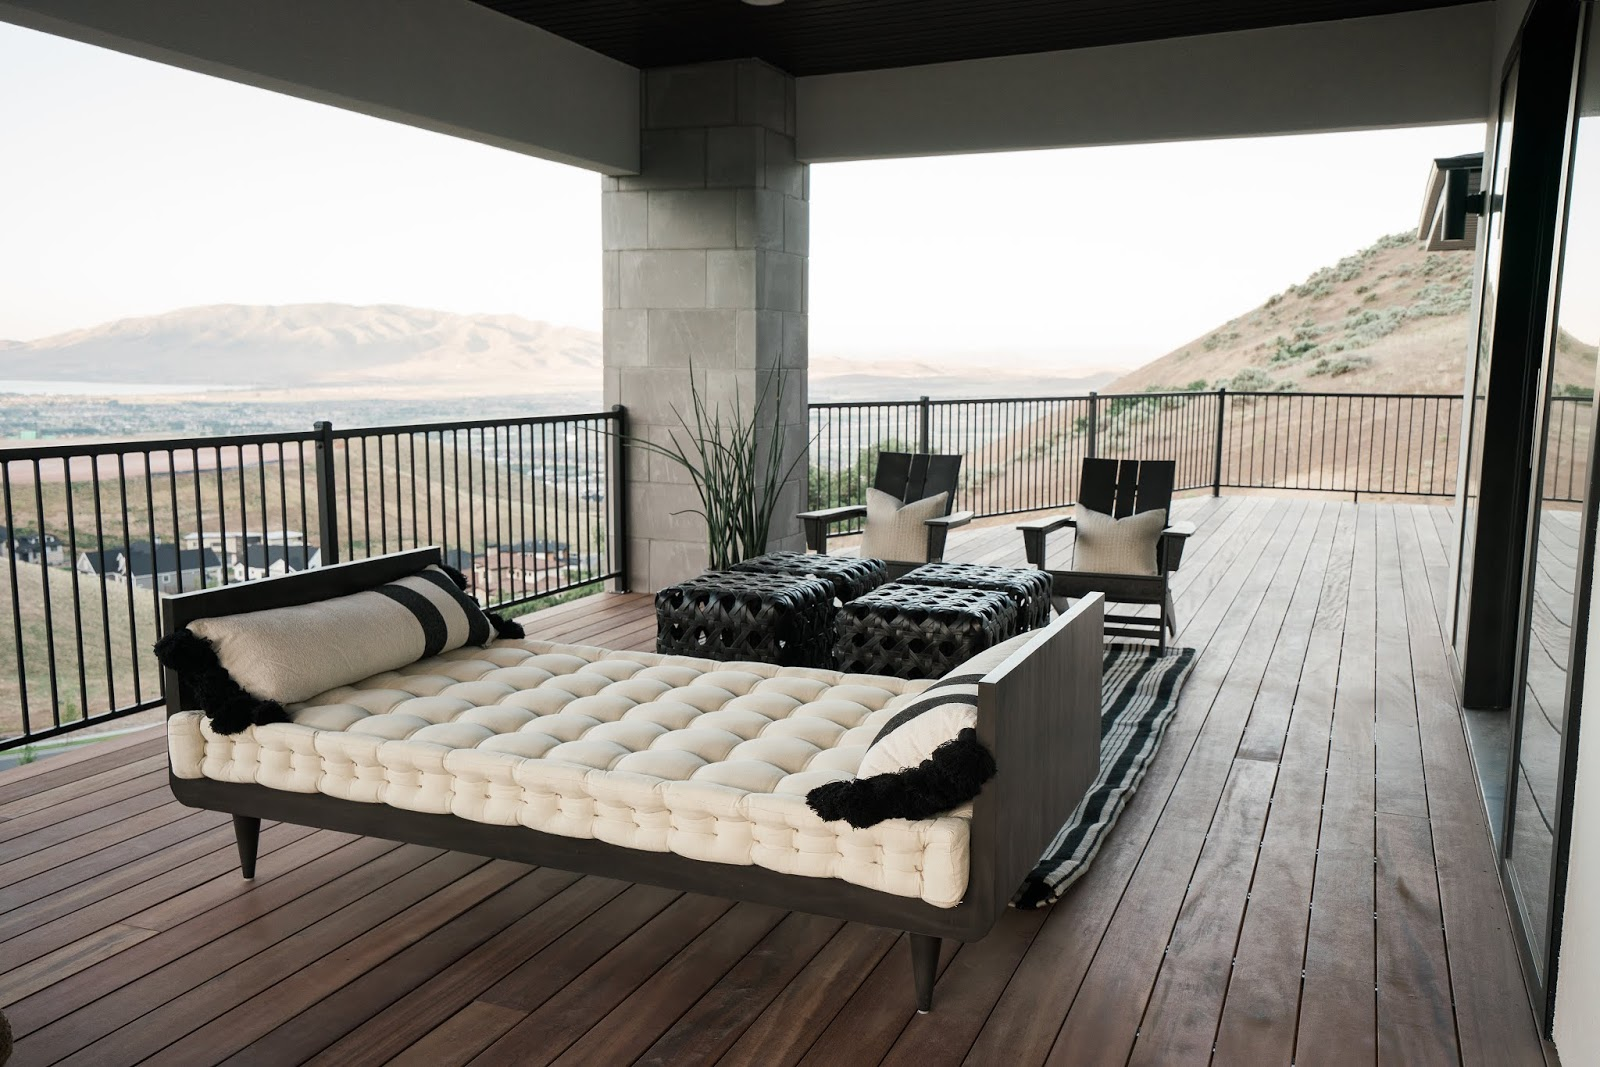 Outdoor Modern Furniture, Deck Furniture